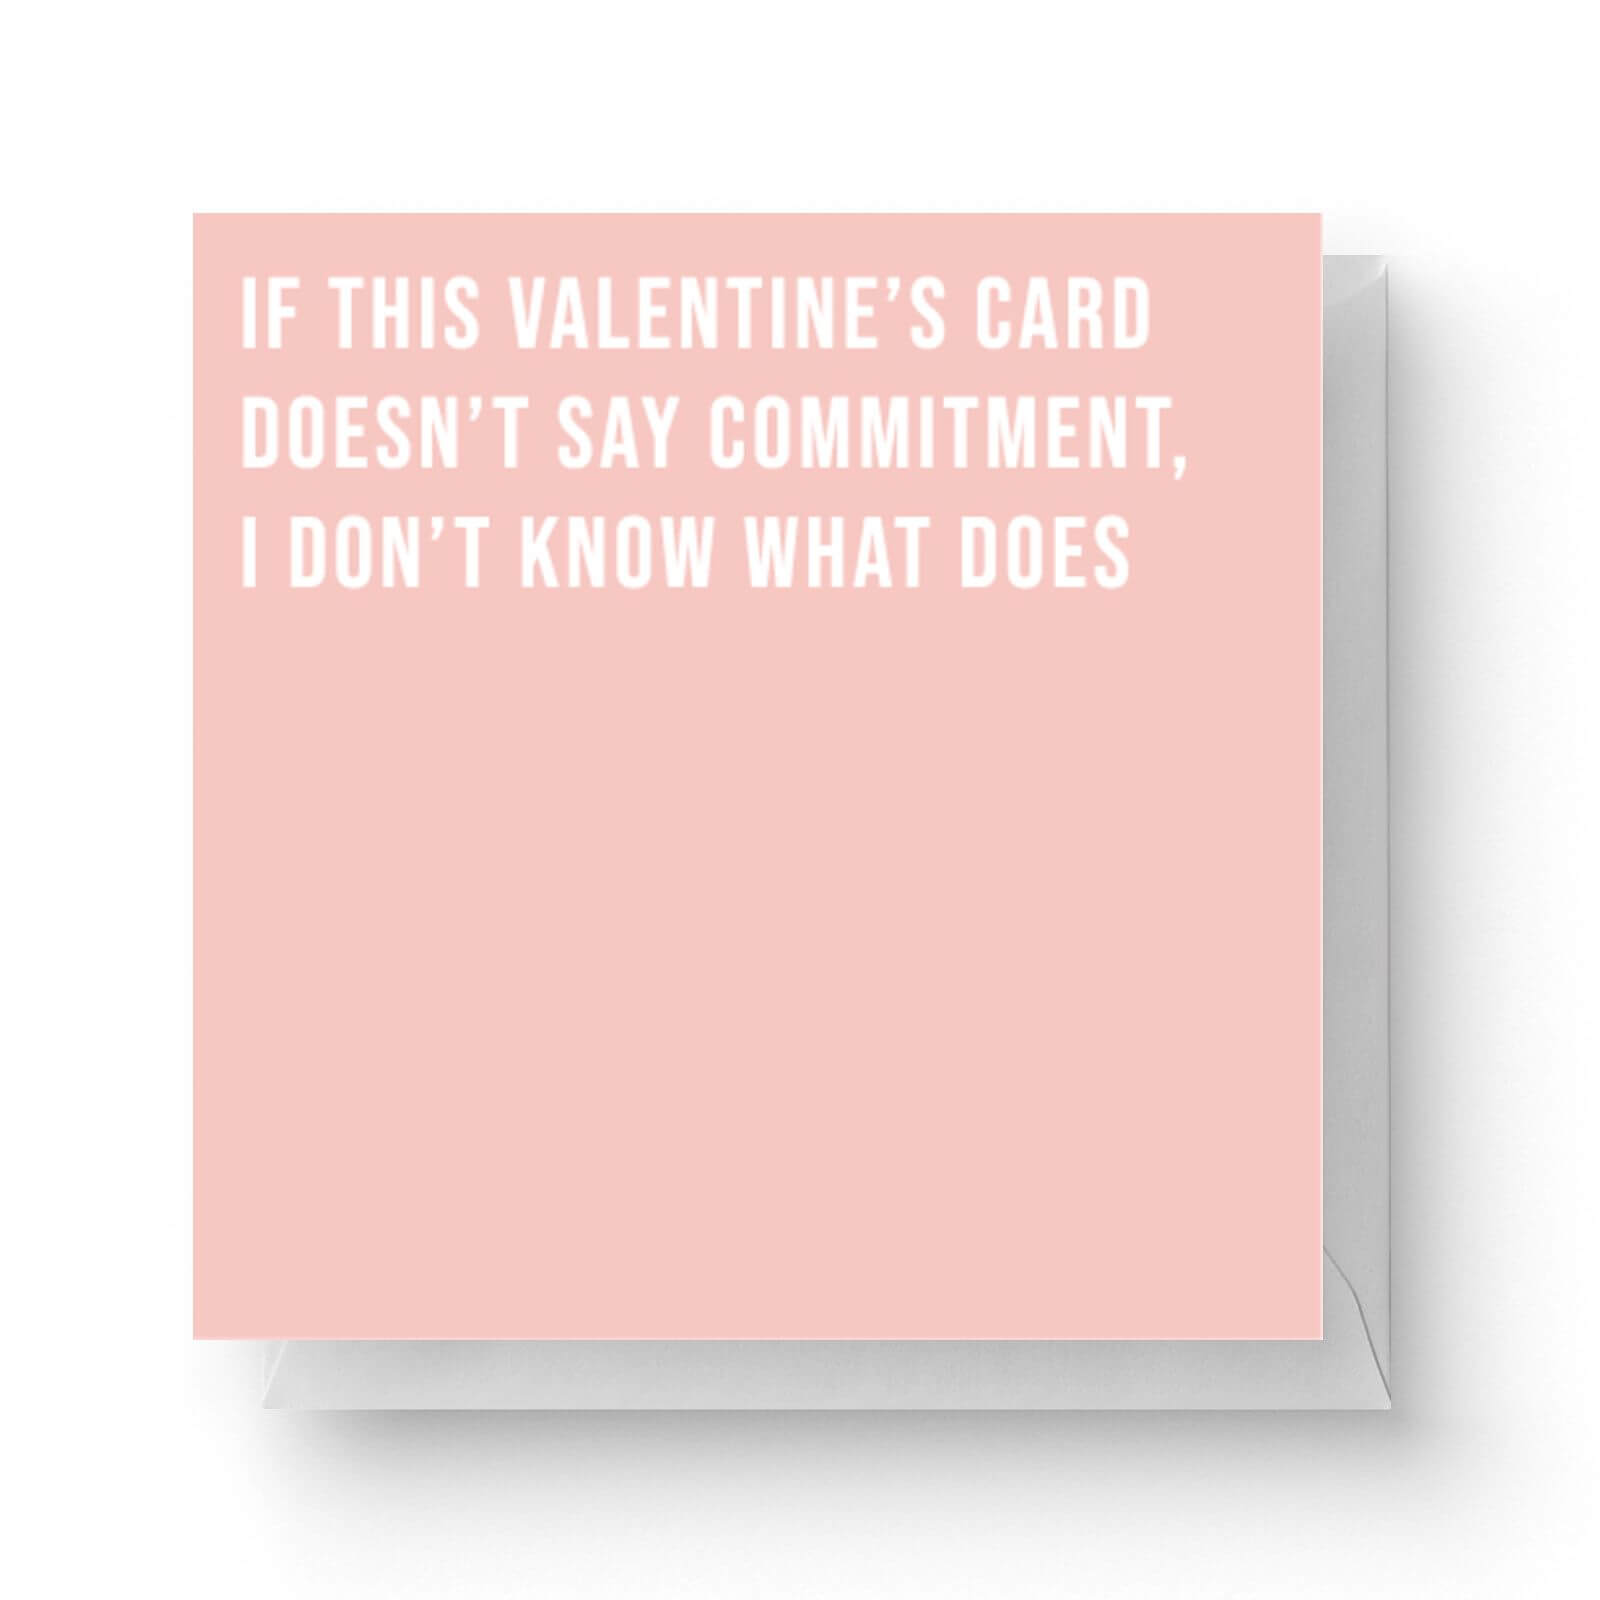 Image of Valentine's Card Commitment Square Greetings Card (14.8cm x 14.8cm)